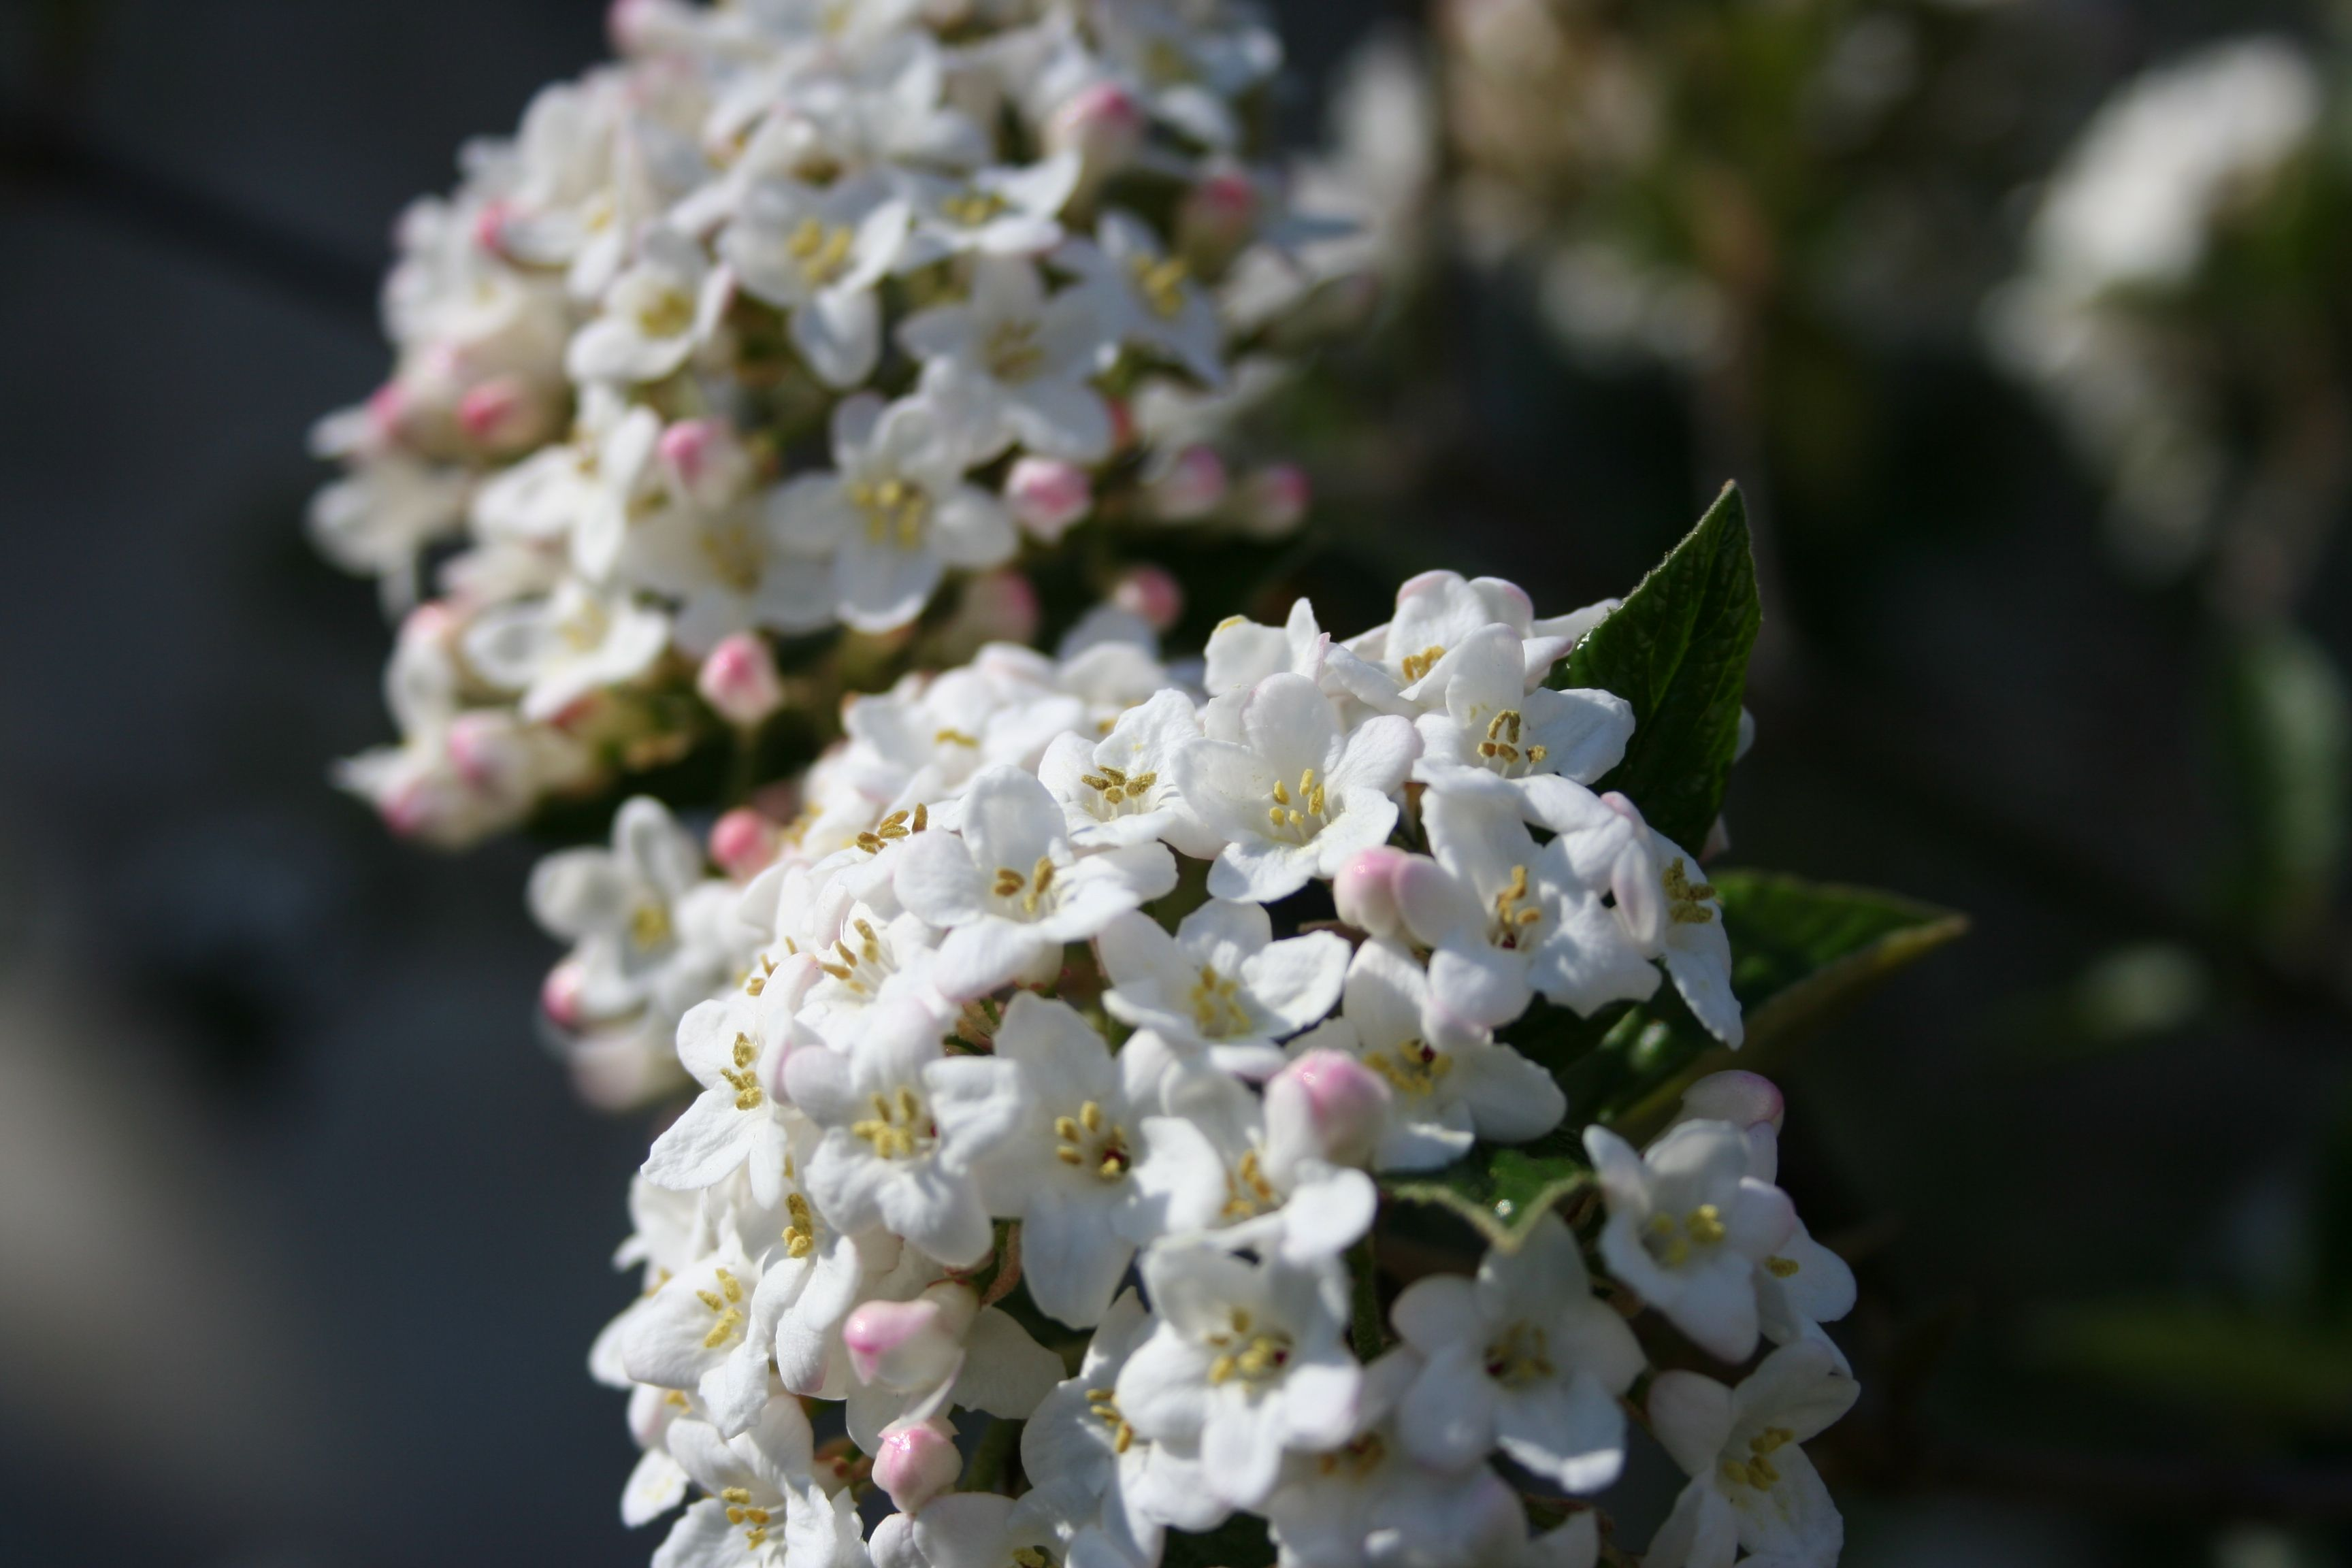 Plant of the Week 14 - Viburnum x. burkwoodii.  This delightfully fragrant evergreen shrub is widely used in the parks and open spaces of Europe and is a favourite in our garden. On a table by the front door of the Garden Design Academy, a pot of rooted cuttings is also in flower, filling the conservatory with its perfume.